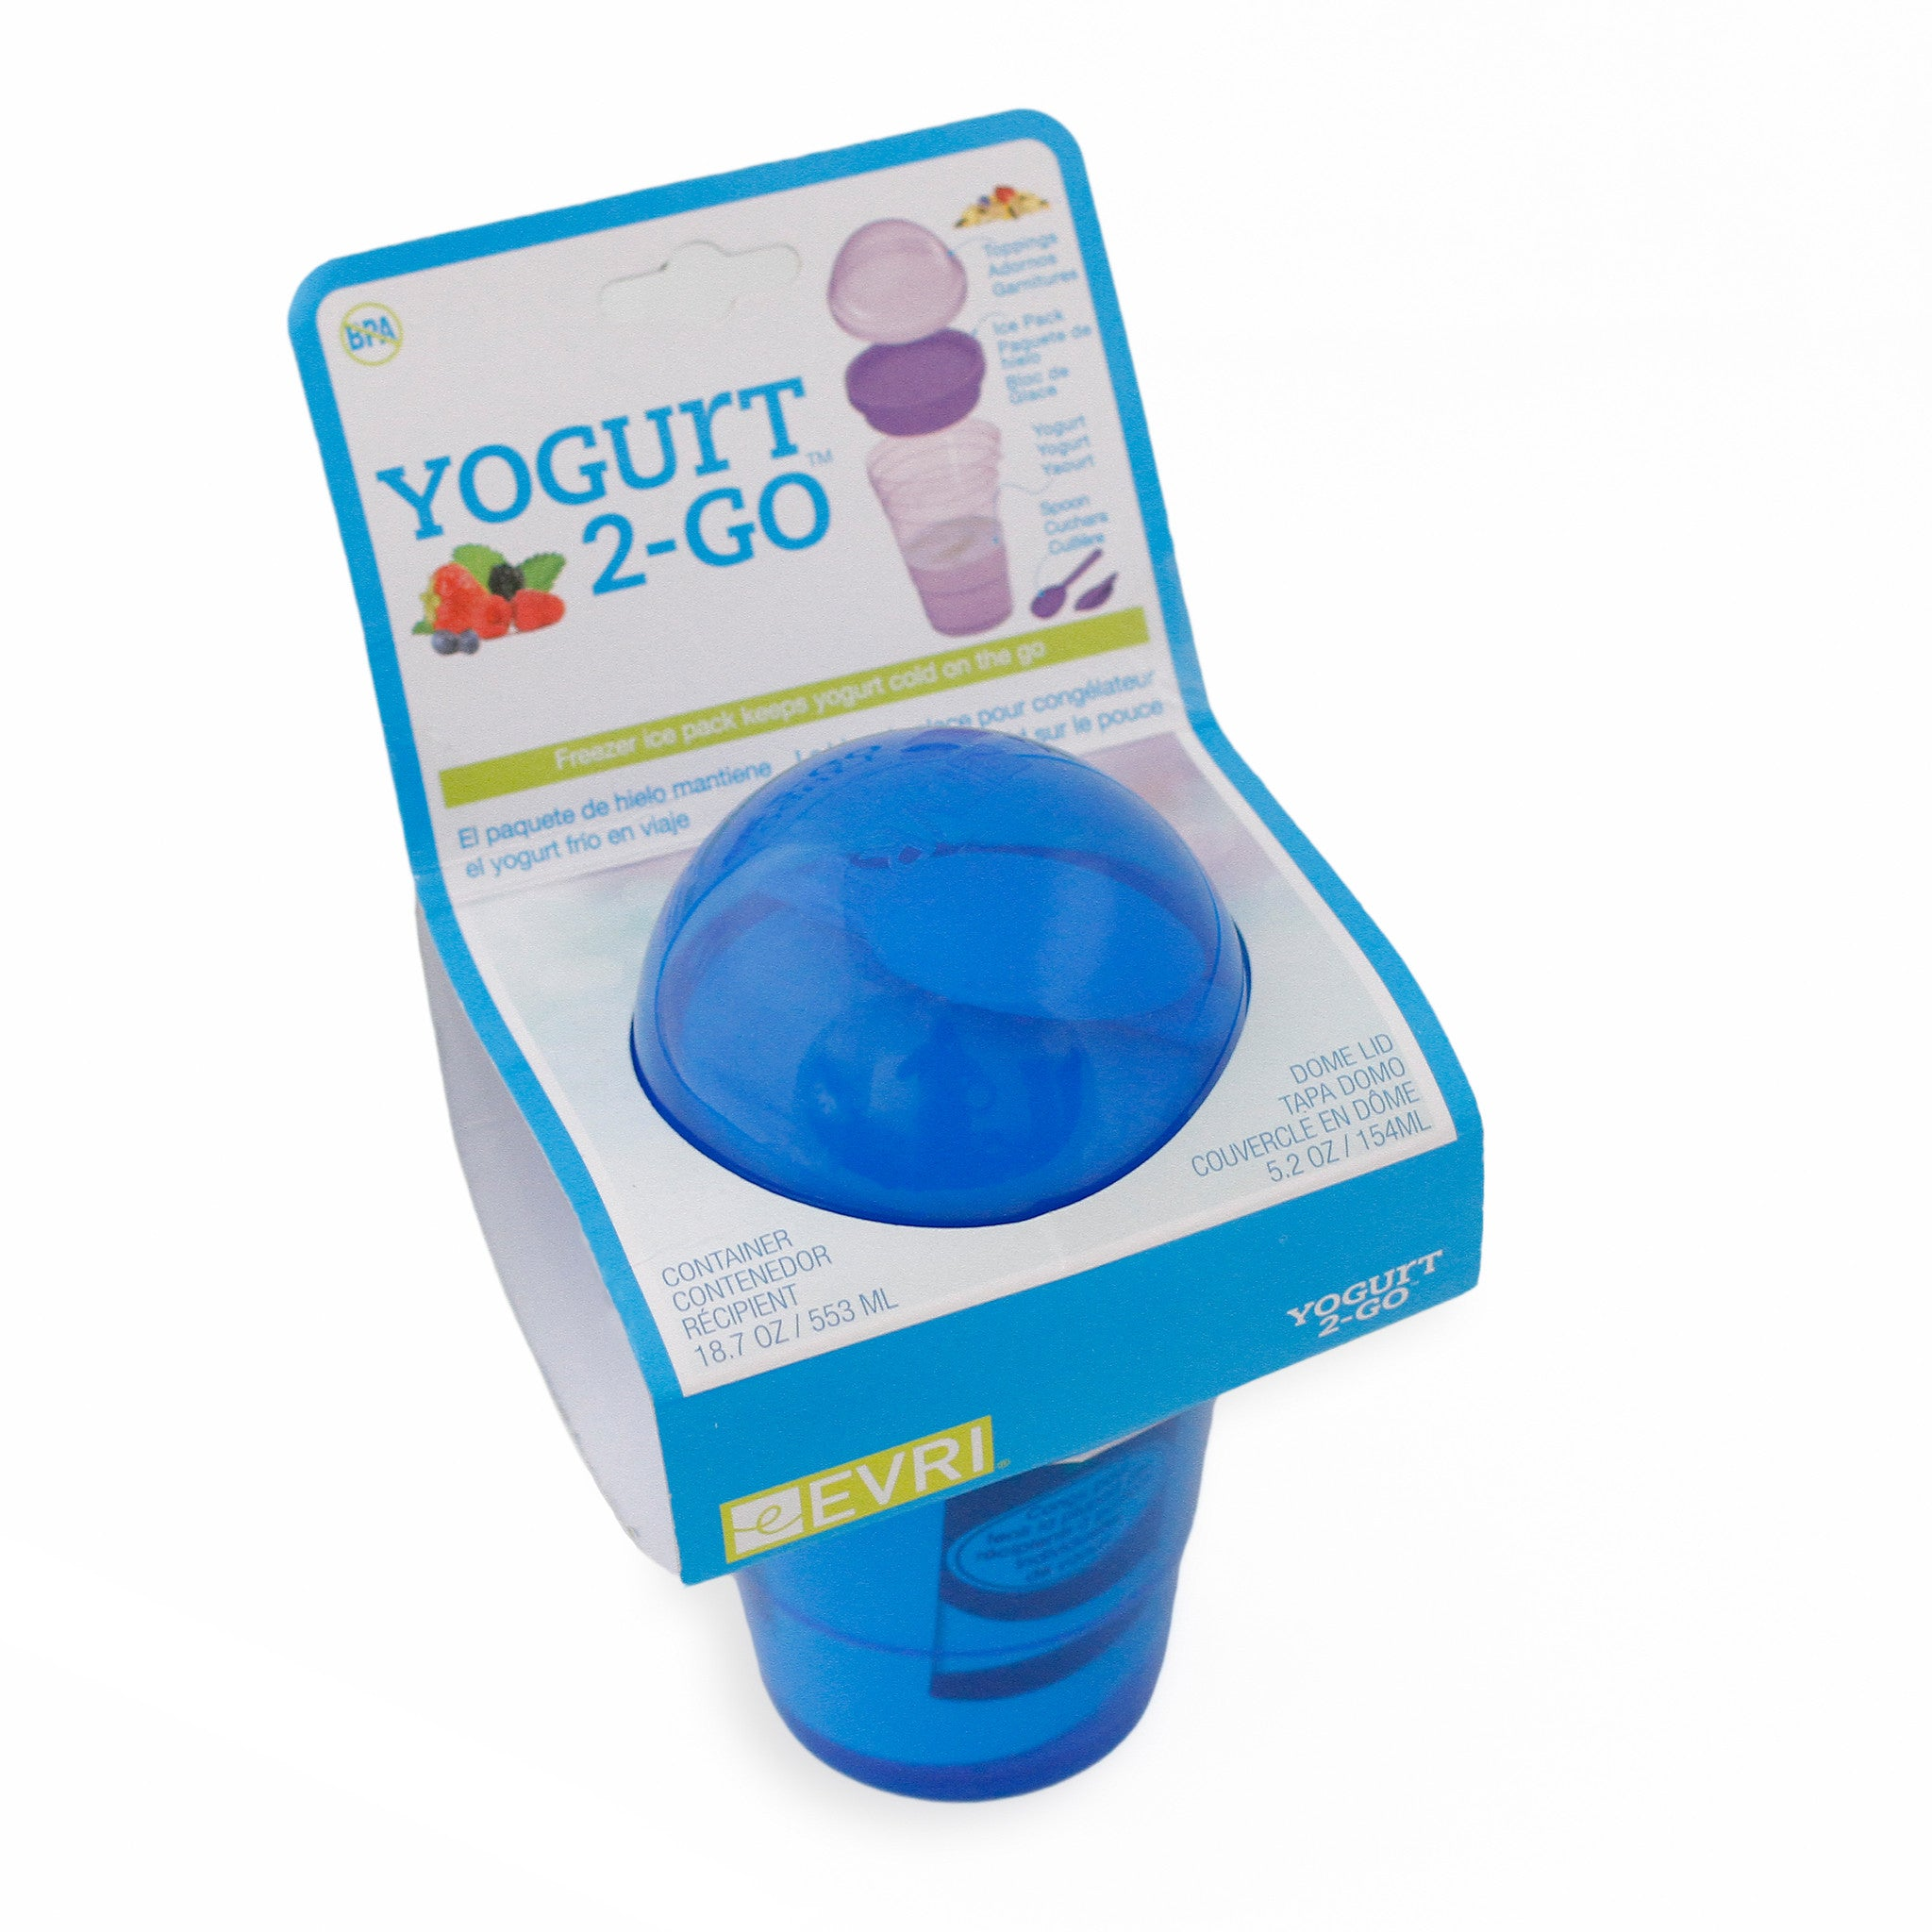 Yogurt 2-Go and Snack Cup